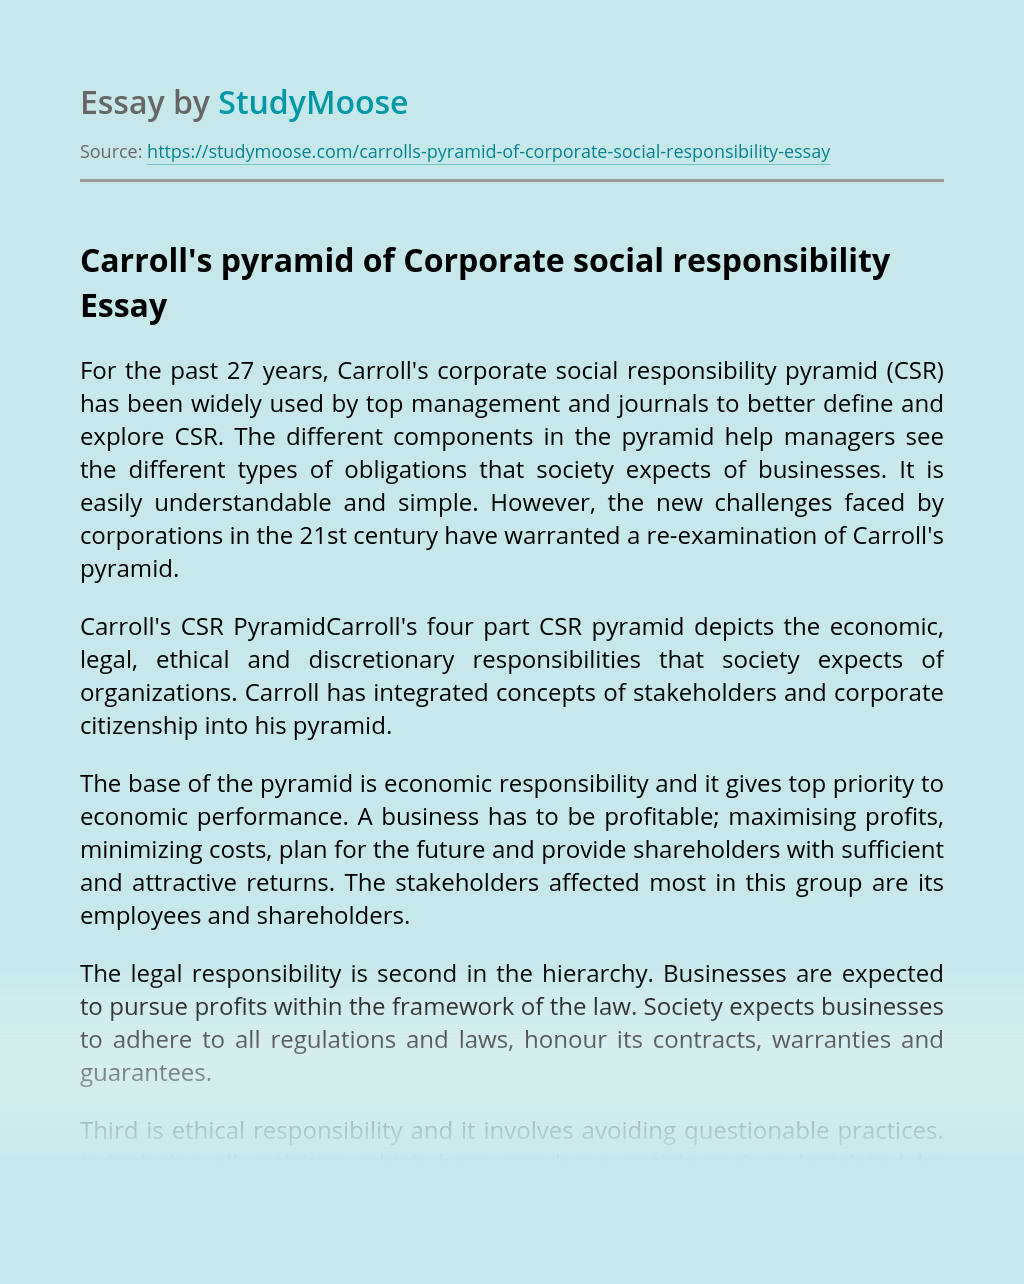 Carroll's pyramid of Corporate social responsibility